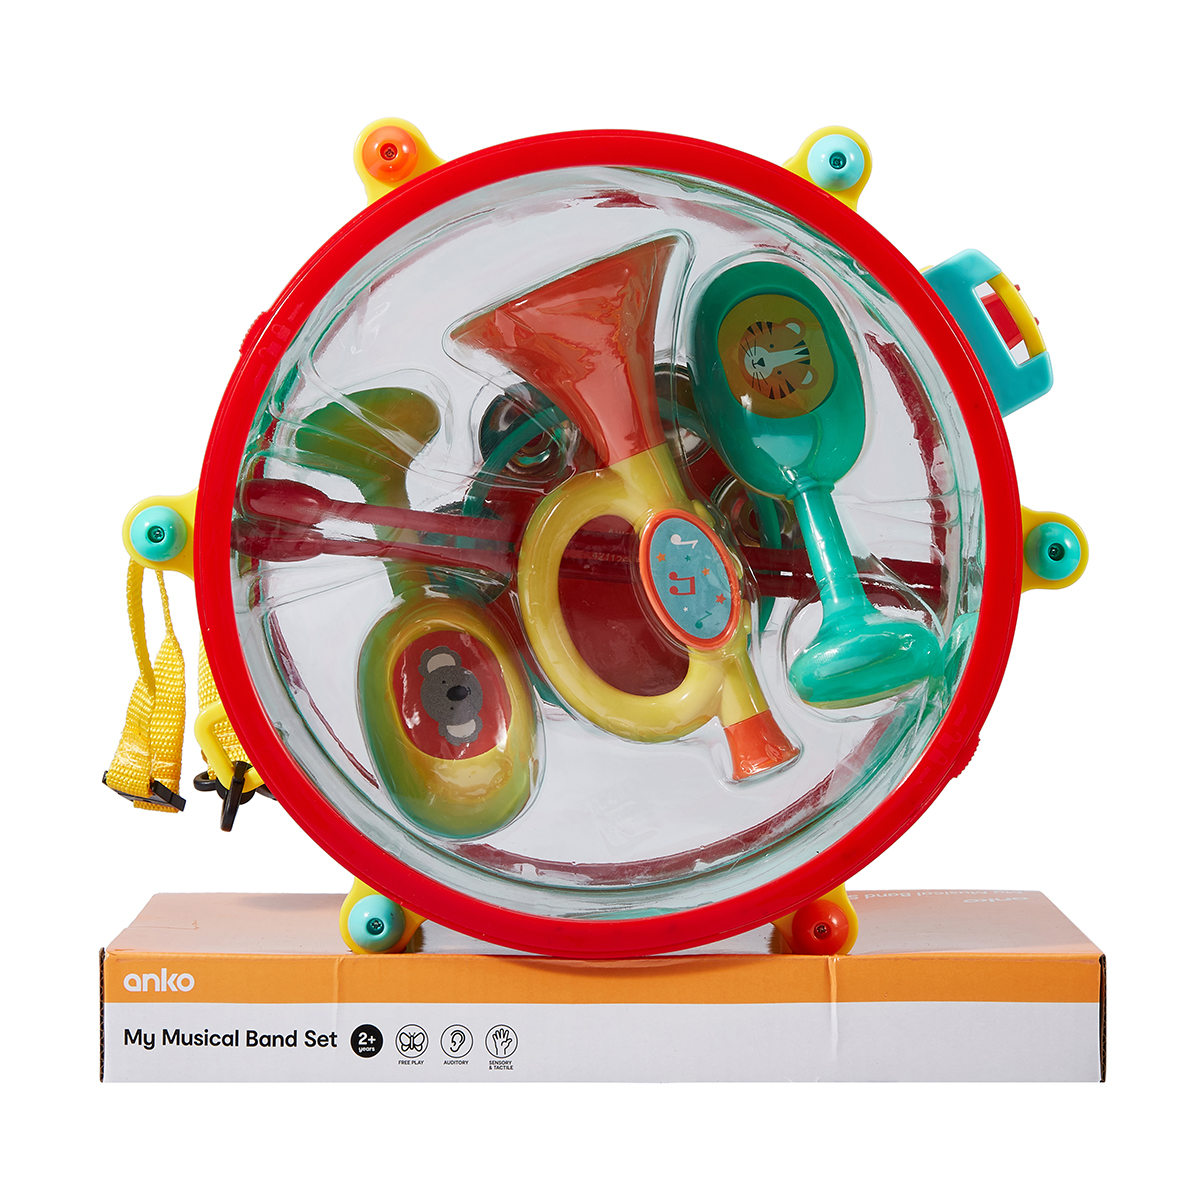 Drum Toy For 1 Year Olds : Piece party drum set kmart